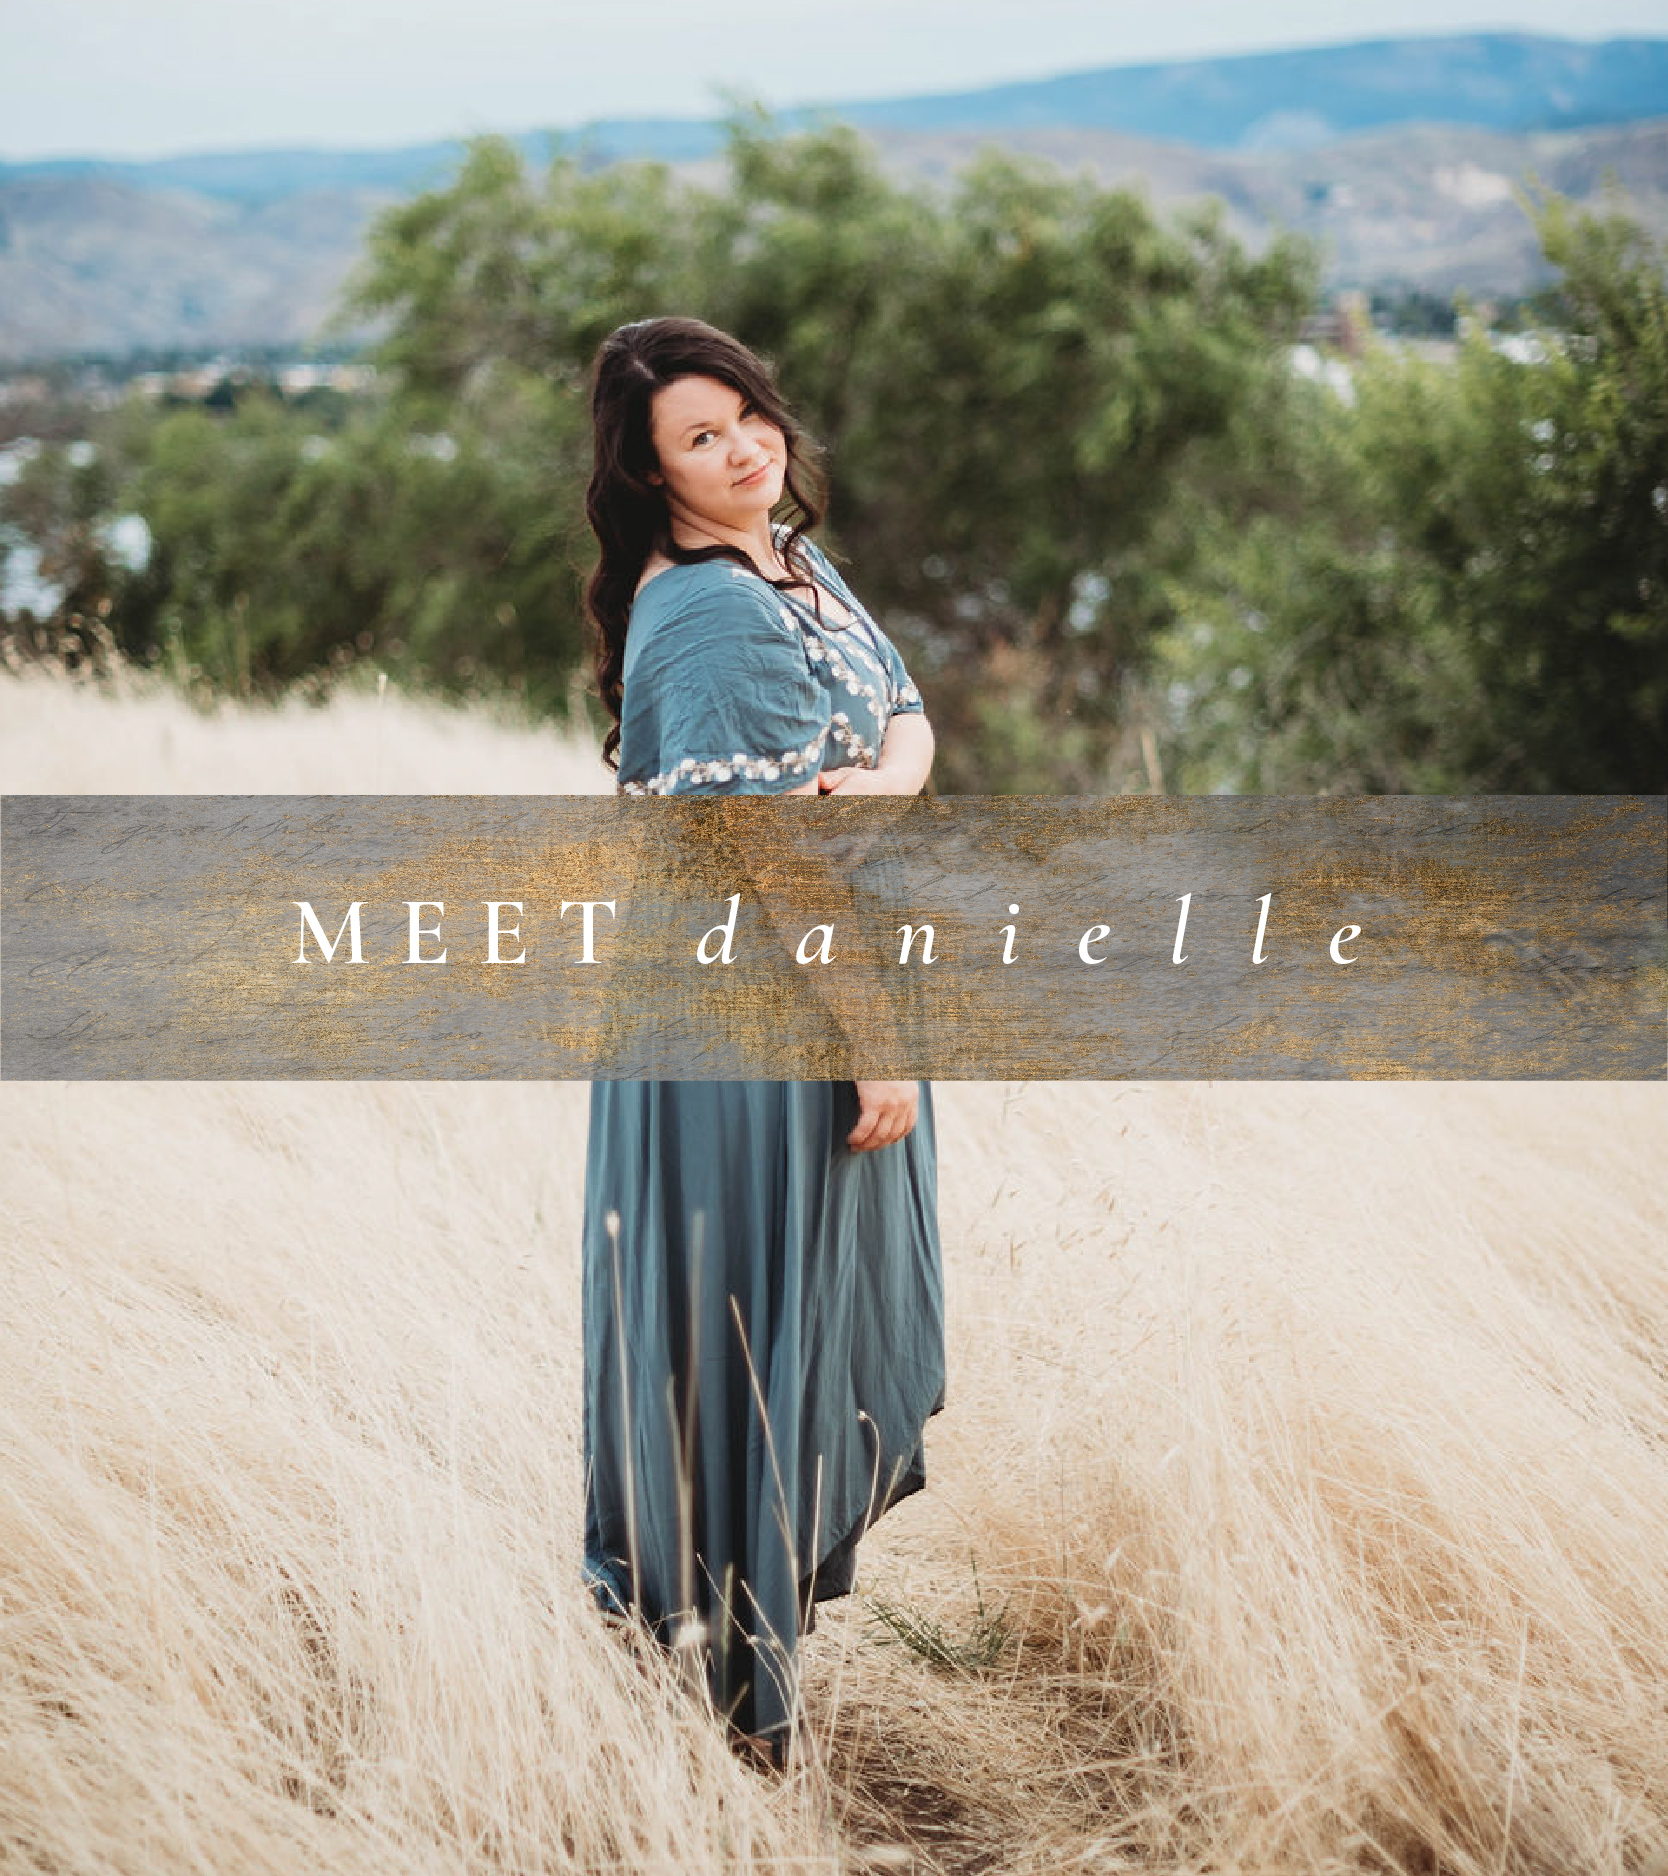 Danielle Louise Washington & Maui Destination Wedding Photographer. Specializing in Weddings, Portraits, Couples, Families and Boudoir in Maui, HI and Washington State, in Wenatchee, Seattle, Portland, Leavenworth, Spokane, Chelan